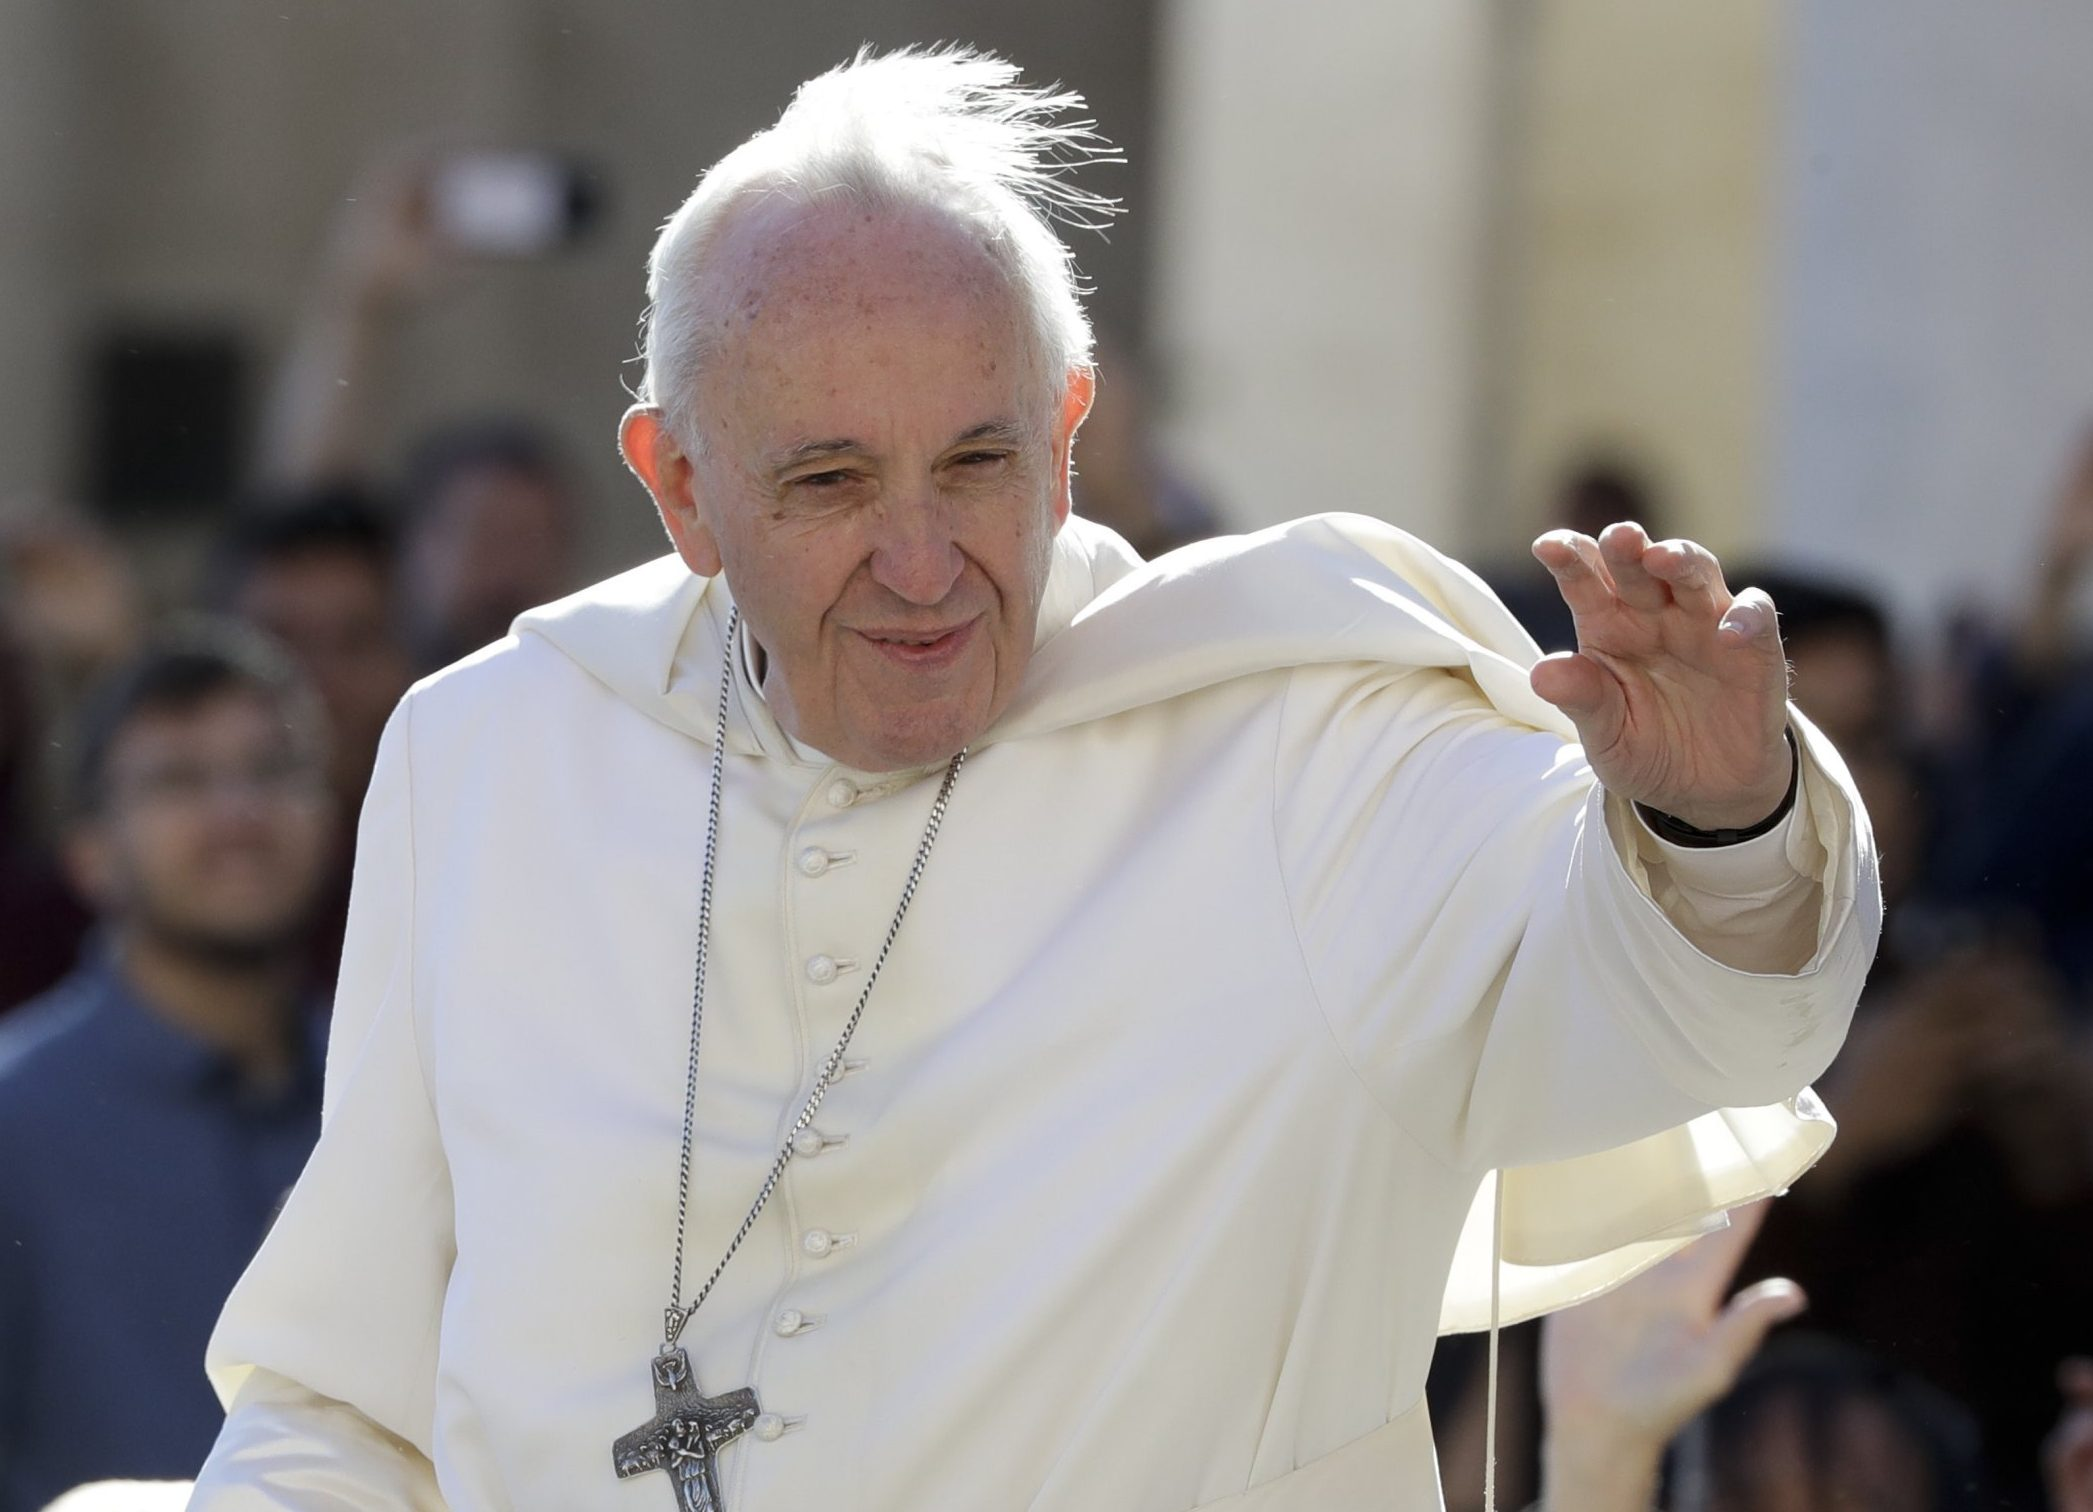 FILE - In this Sept. 26, 2018 file photo, Pope Francis arrives for his weekly general audience in St. Peter's Square at the Vatican. South Korea says North Korean leader Kim Jong Un wants Pope Francis to visit North Korea. (AP Photo/Andrew Medichini, File)